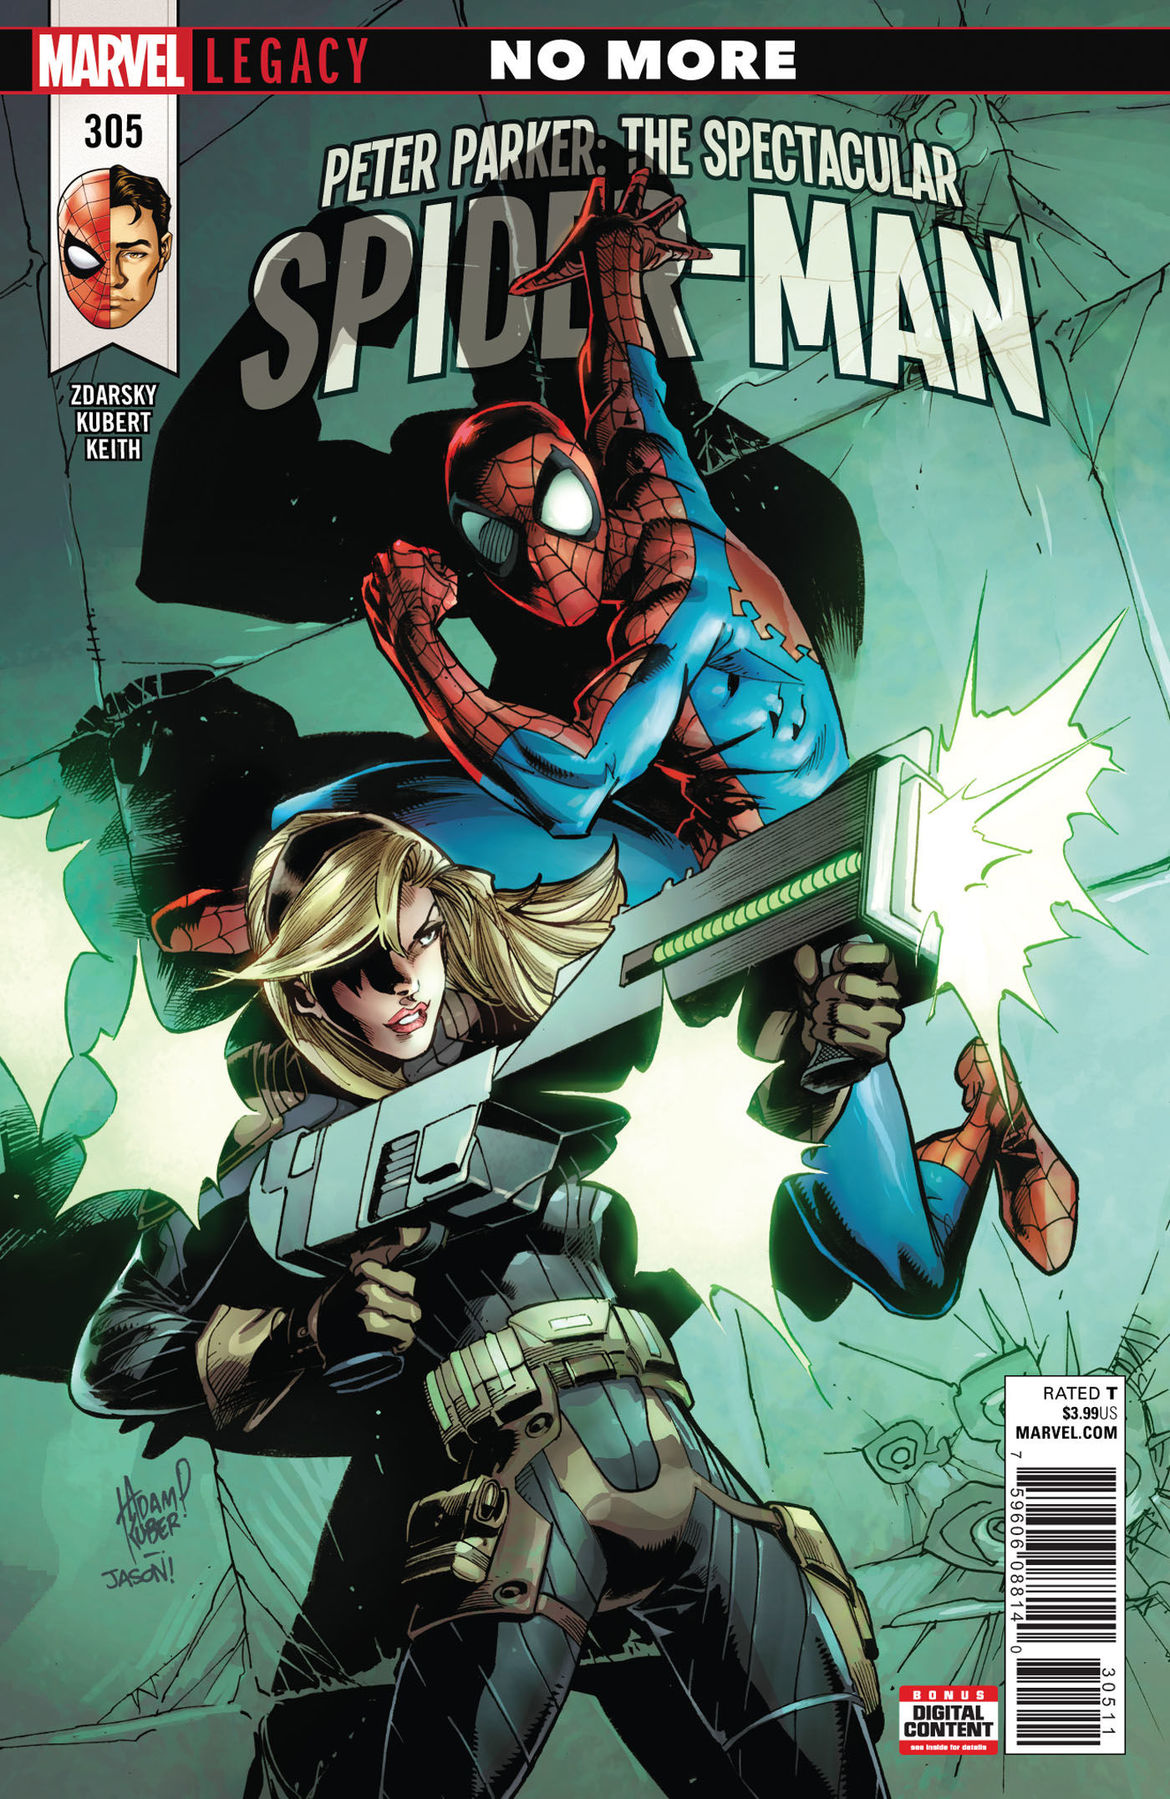 Peter Parker Spectacular Spider-Man 305 cover